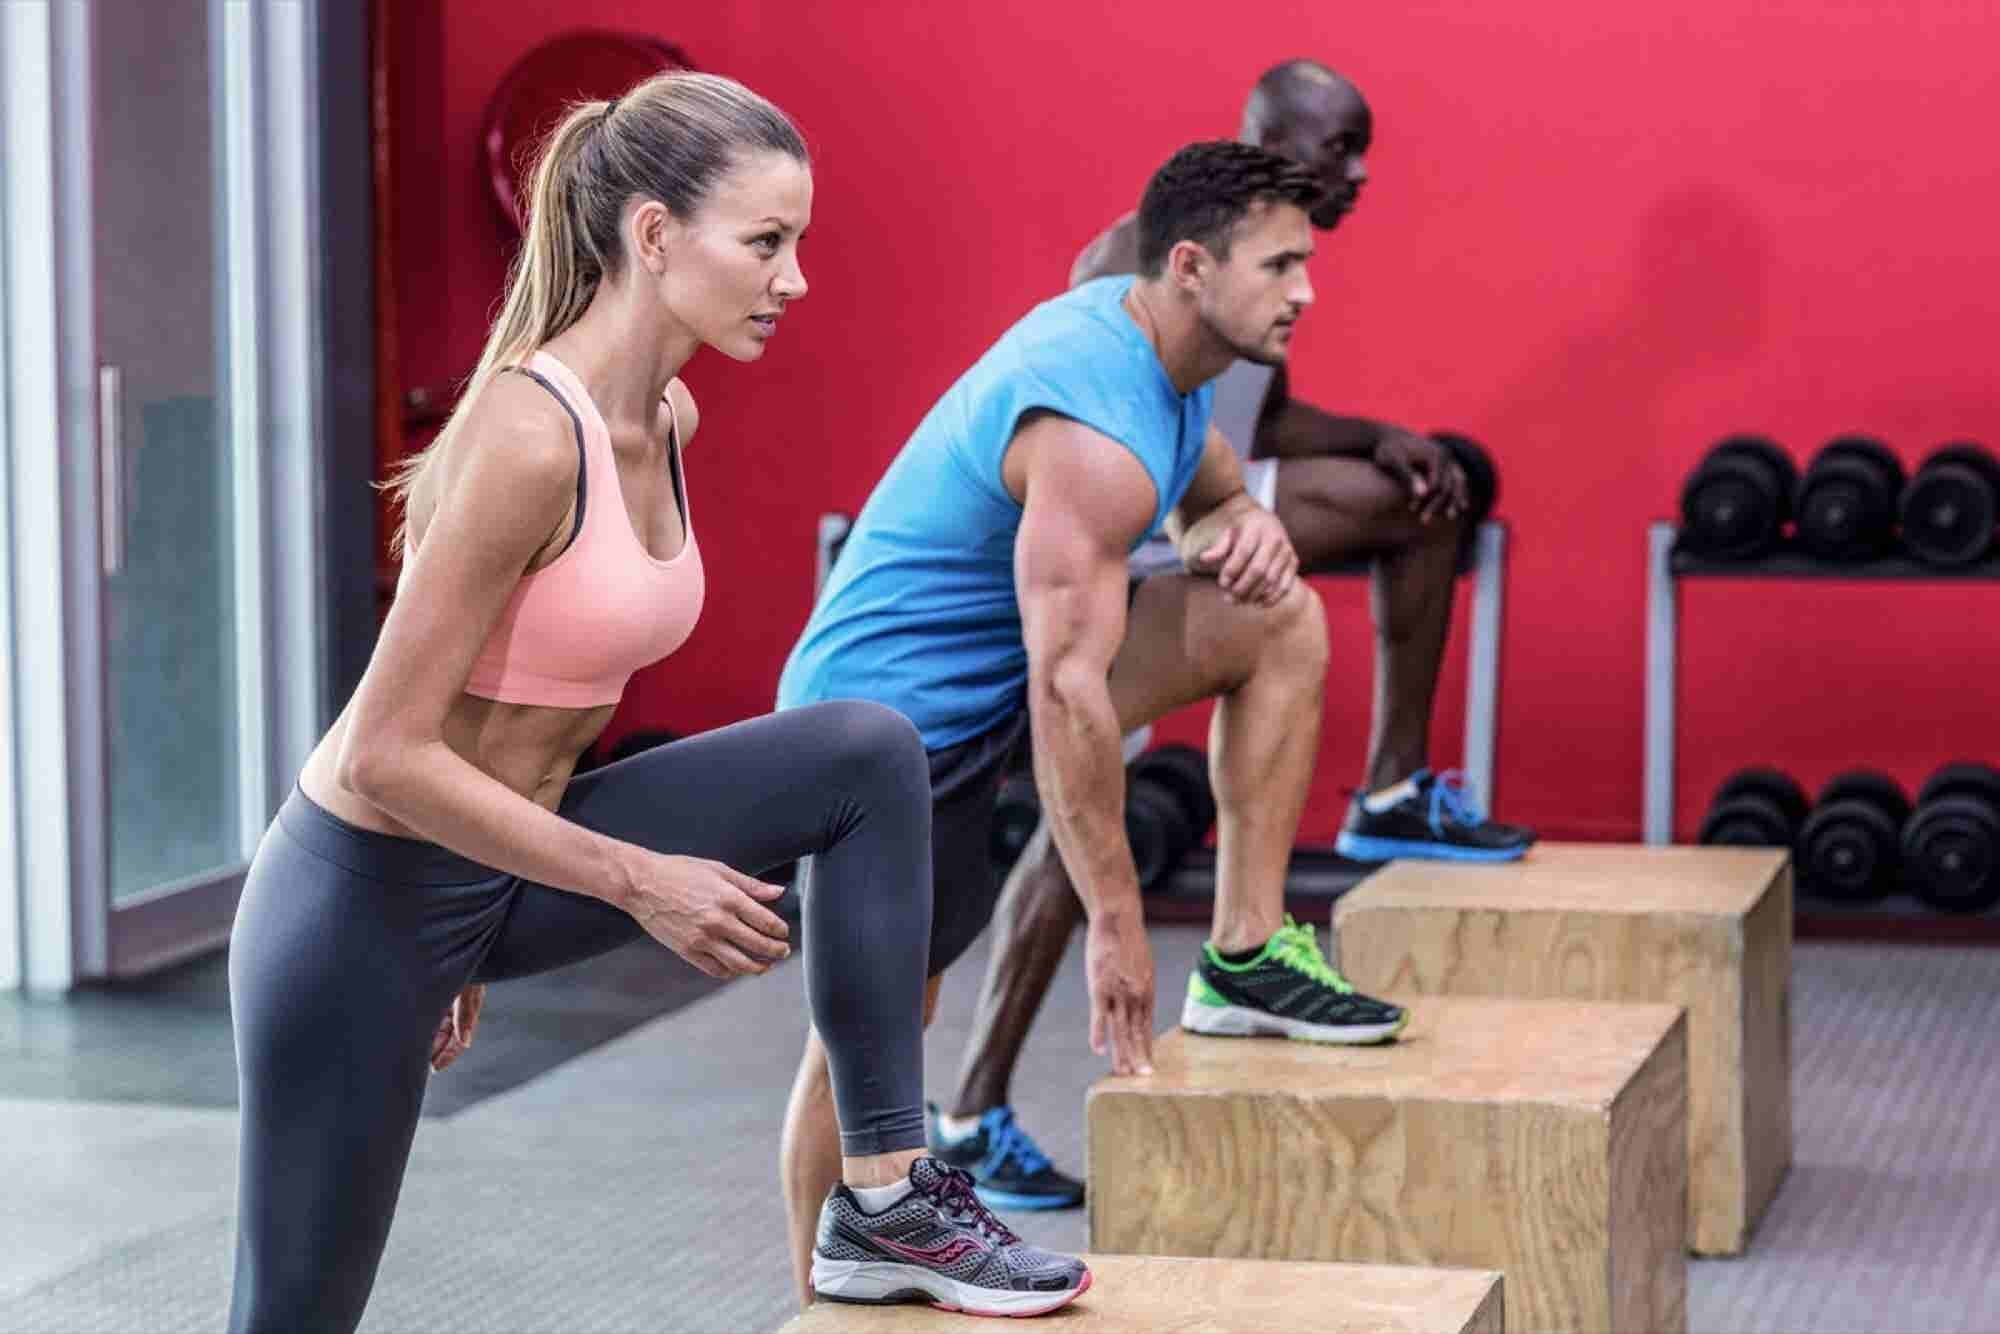 How a Visit to Crossfit Taught Me the Importance of Finding 'Company C...